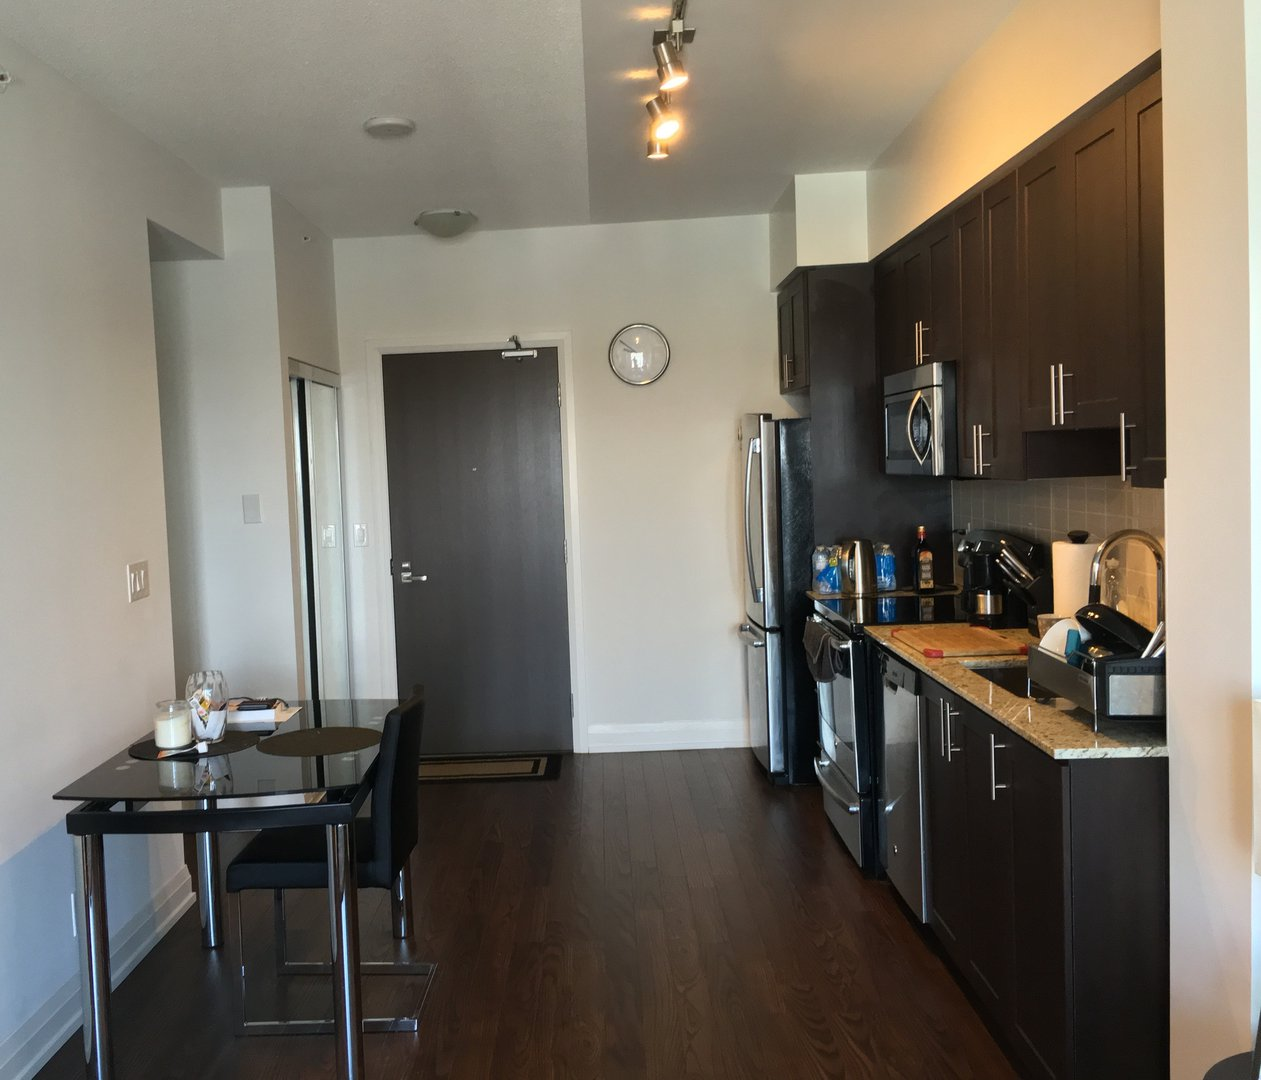 Apartment for rent at 7161 Yonge Street, Markham, ON.